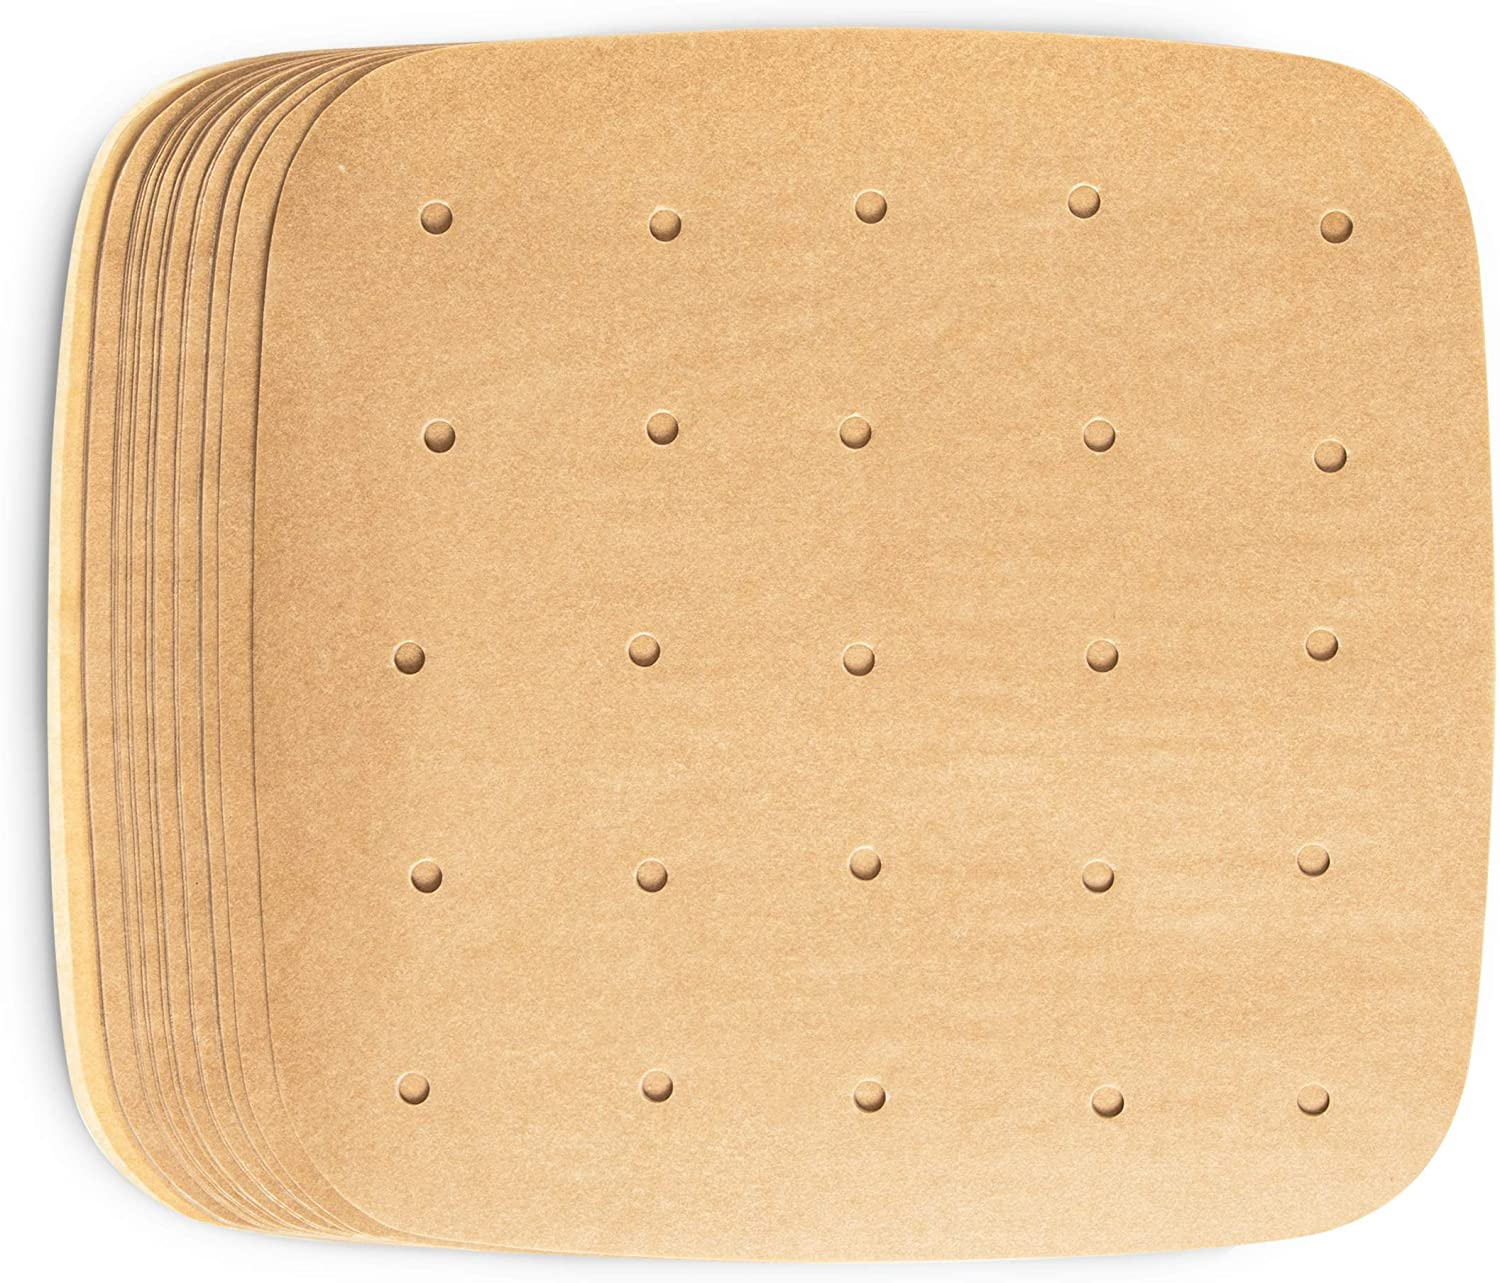 Air Fryer Liners, Unbleached Parchment Paper (8.5 x 8.5 In, 200 Pack)